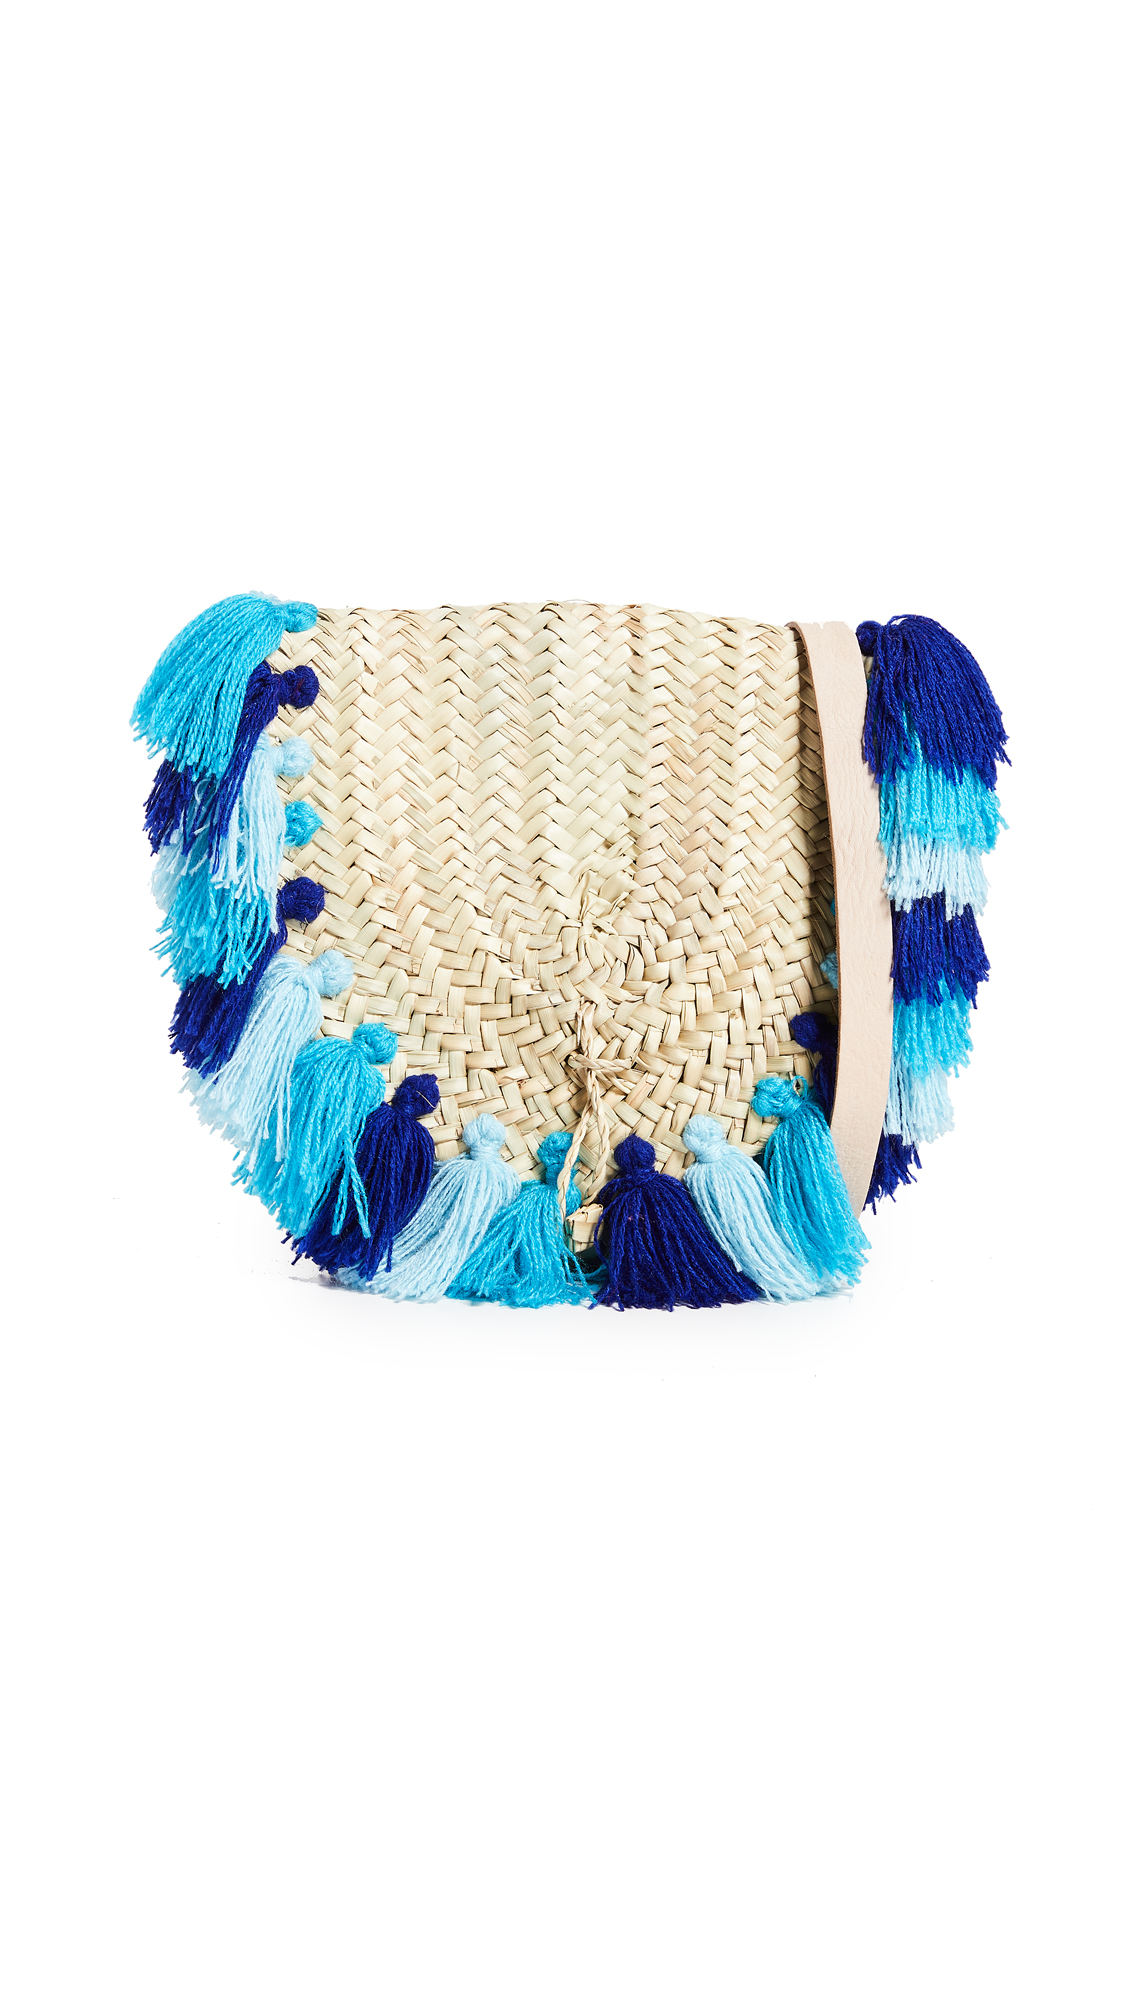 woven-bags-and-accessories-2018-pompom-tassels